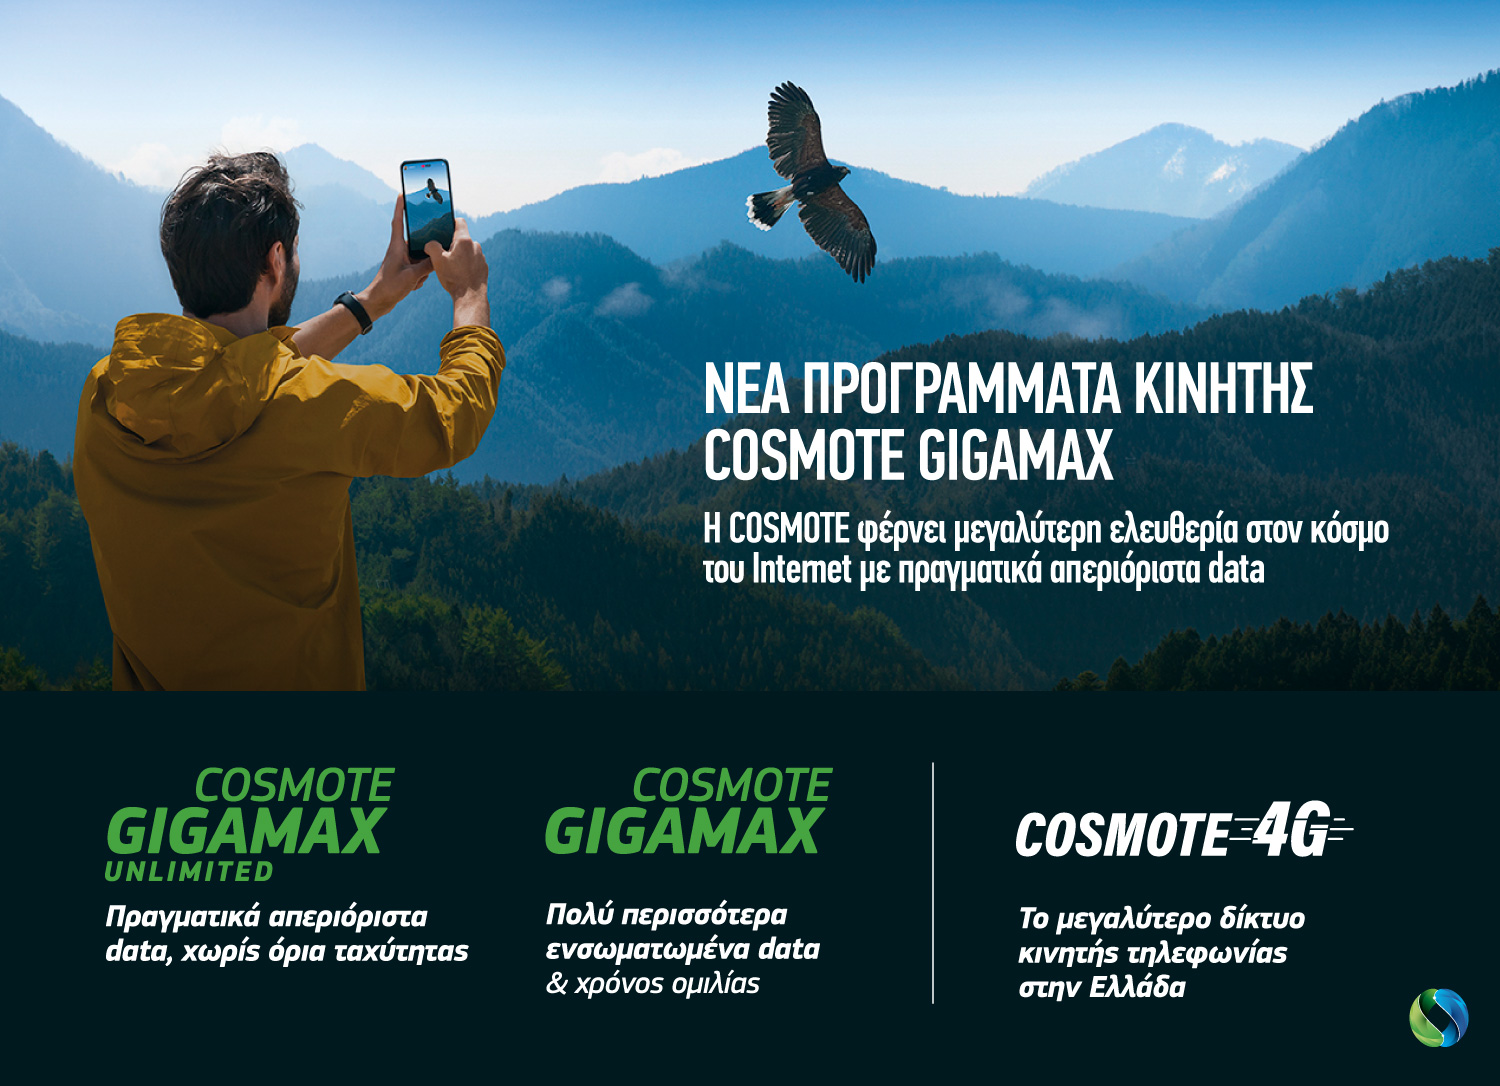 cosmote_gigamax_unlimited.jpg